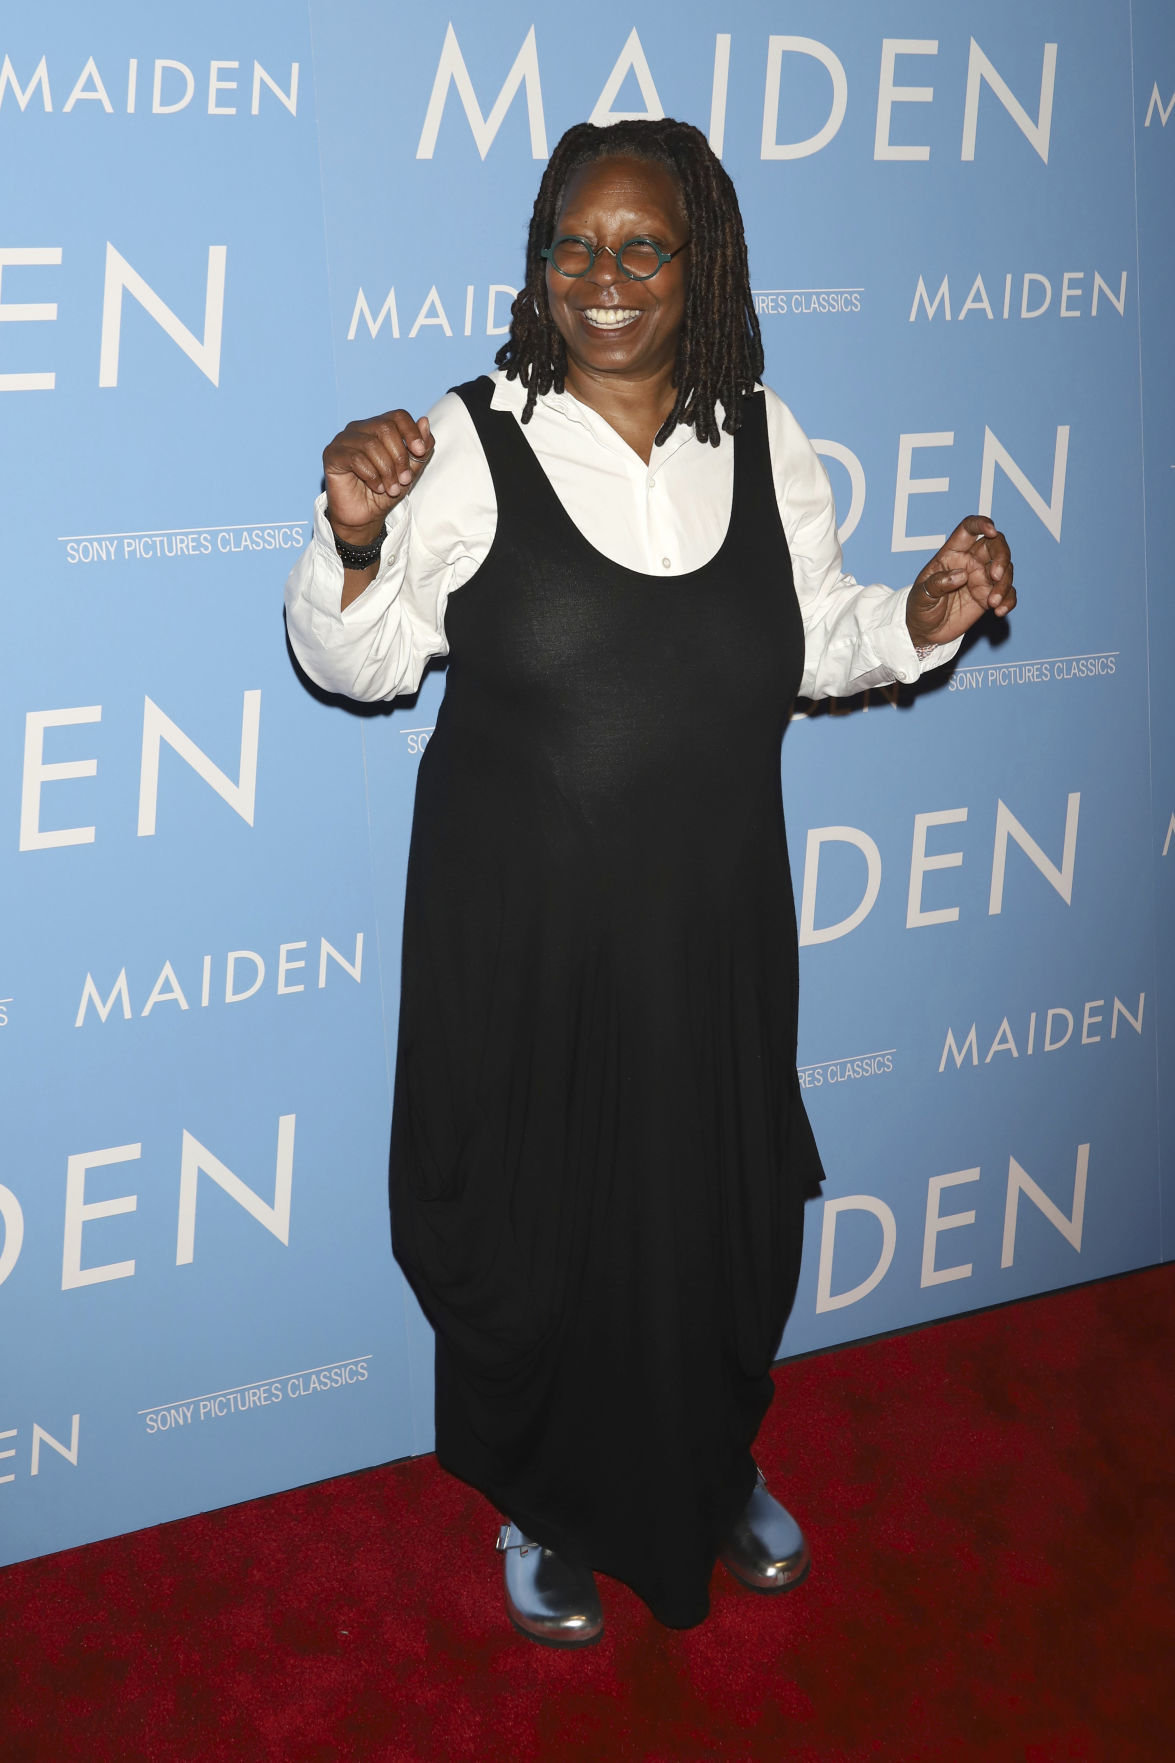 """NY Premiere of """"Maiden"""""""